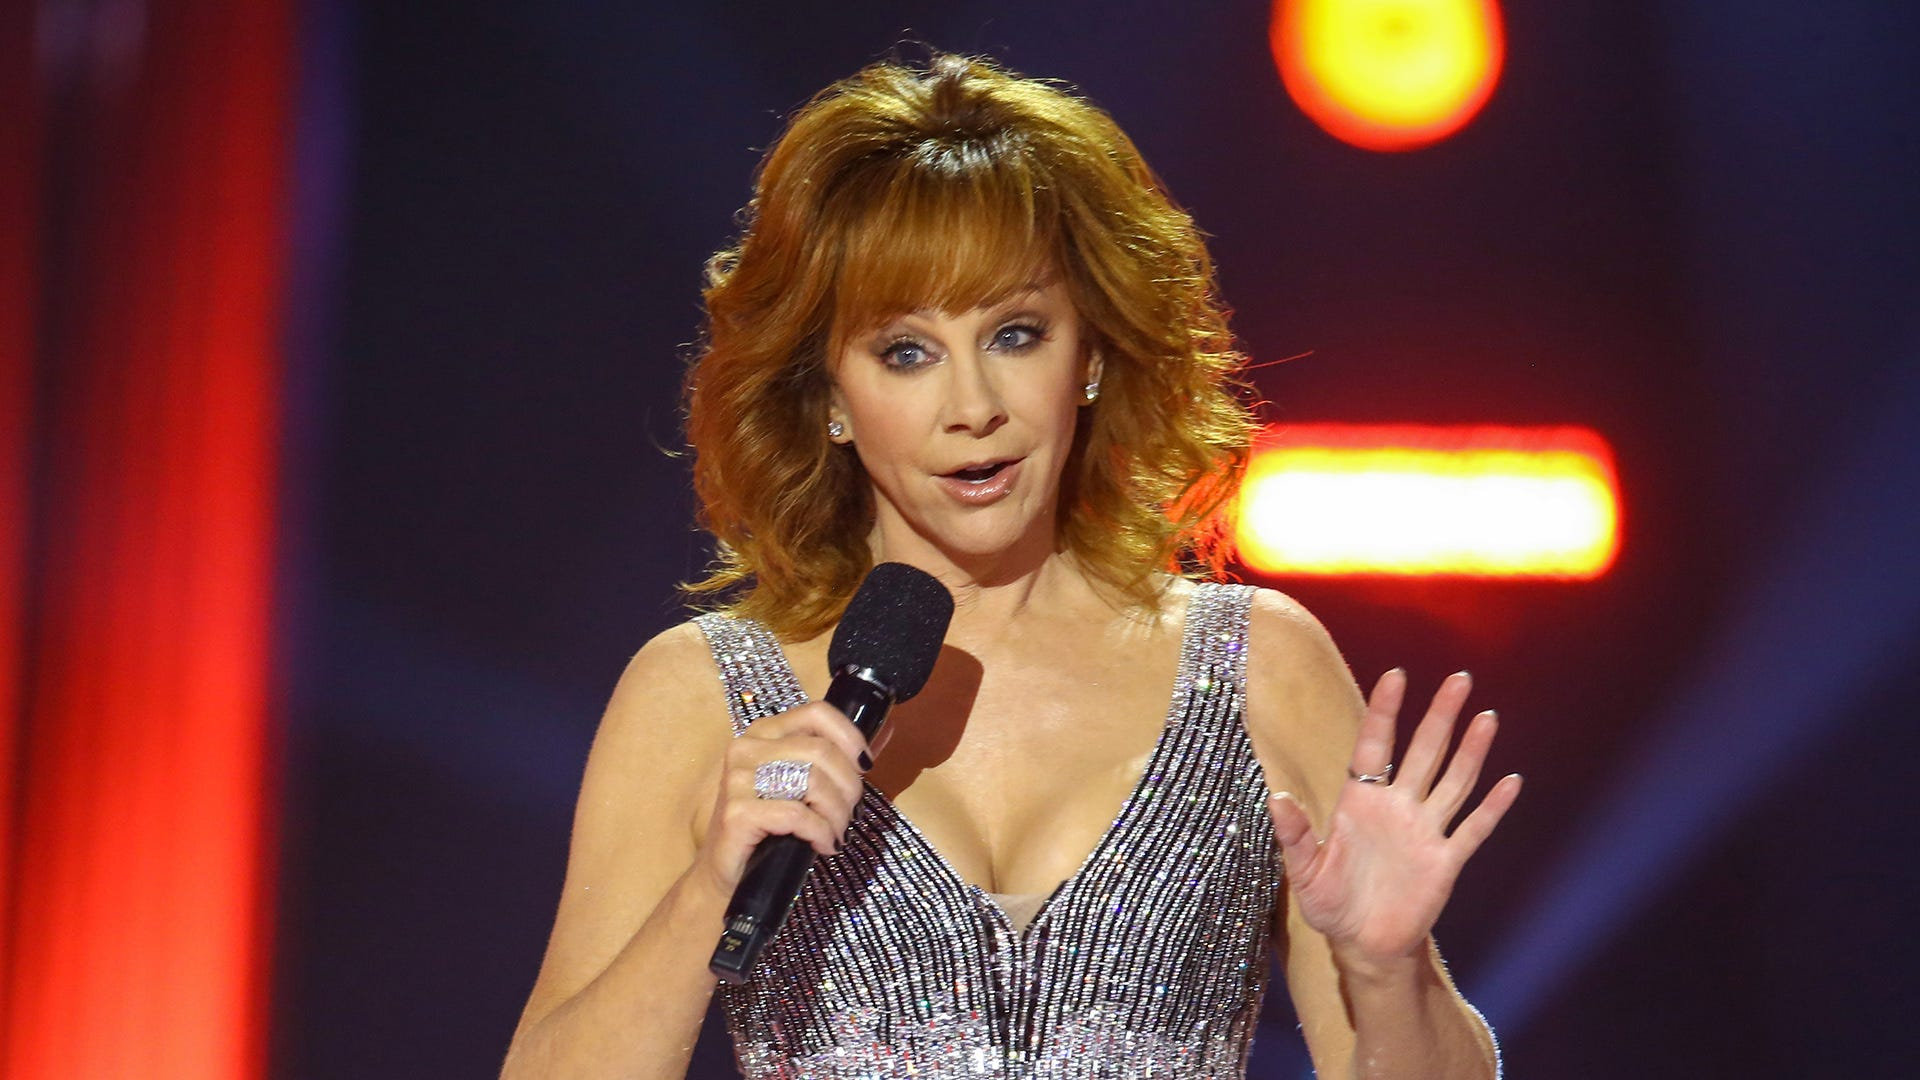 Watch Reba McEntire get rescued from an Oklahoma building during staircase collapse